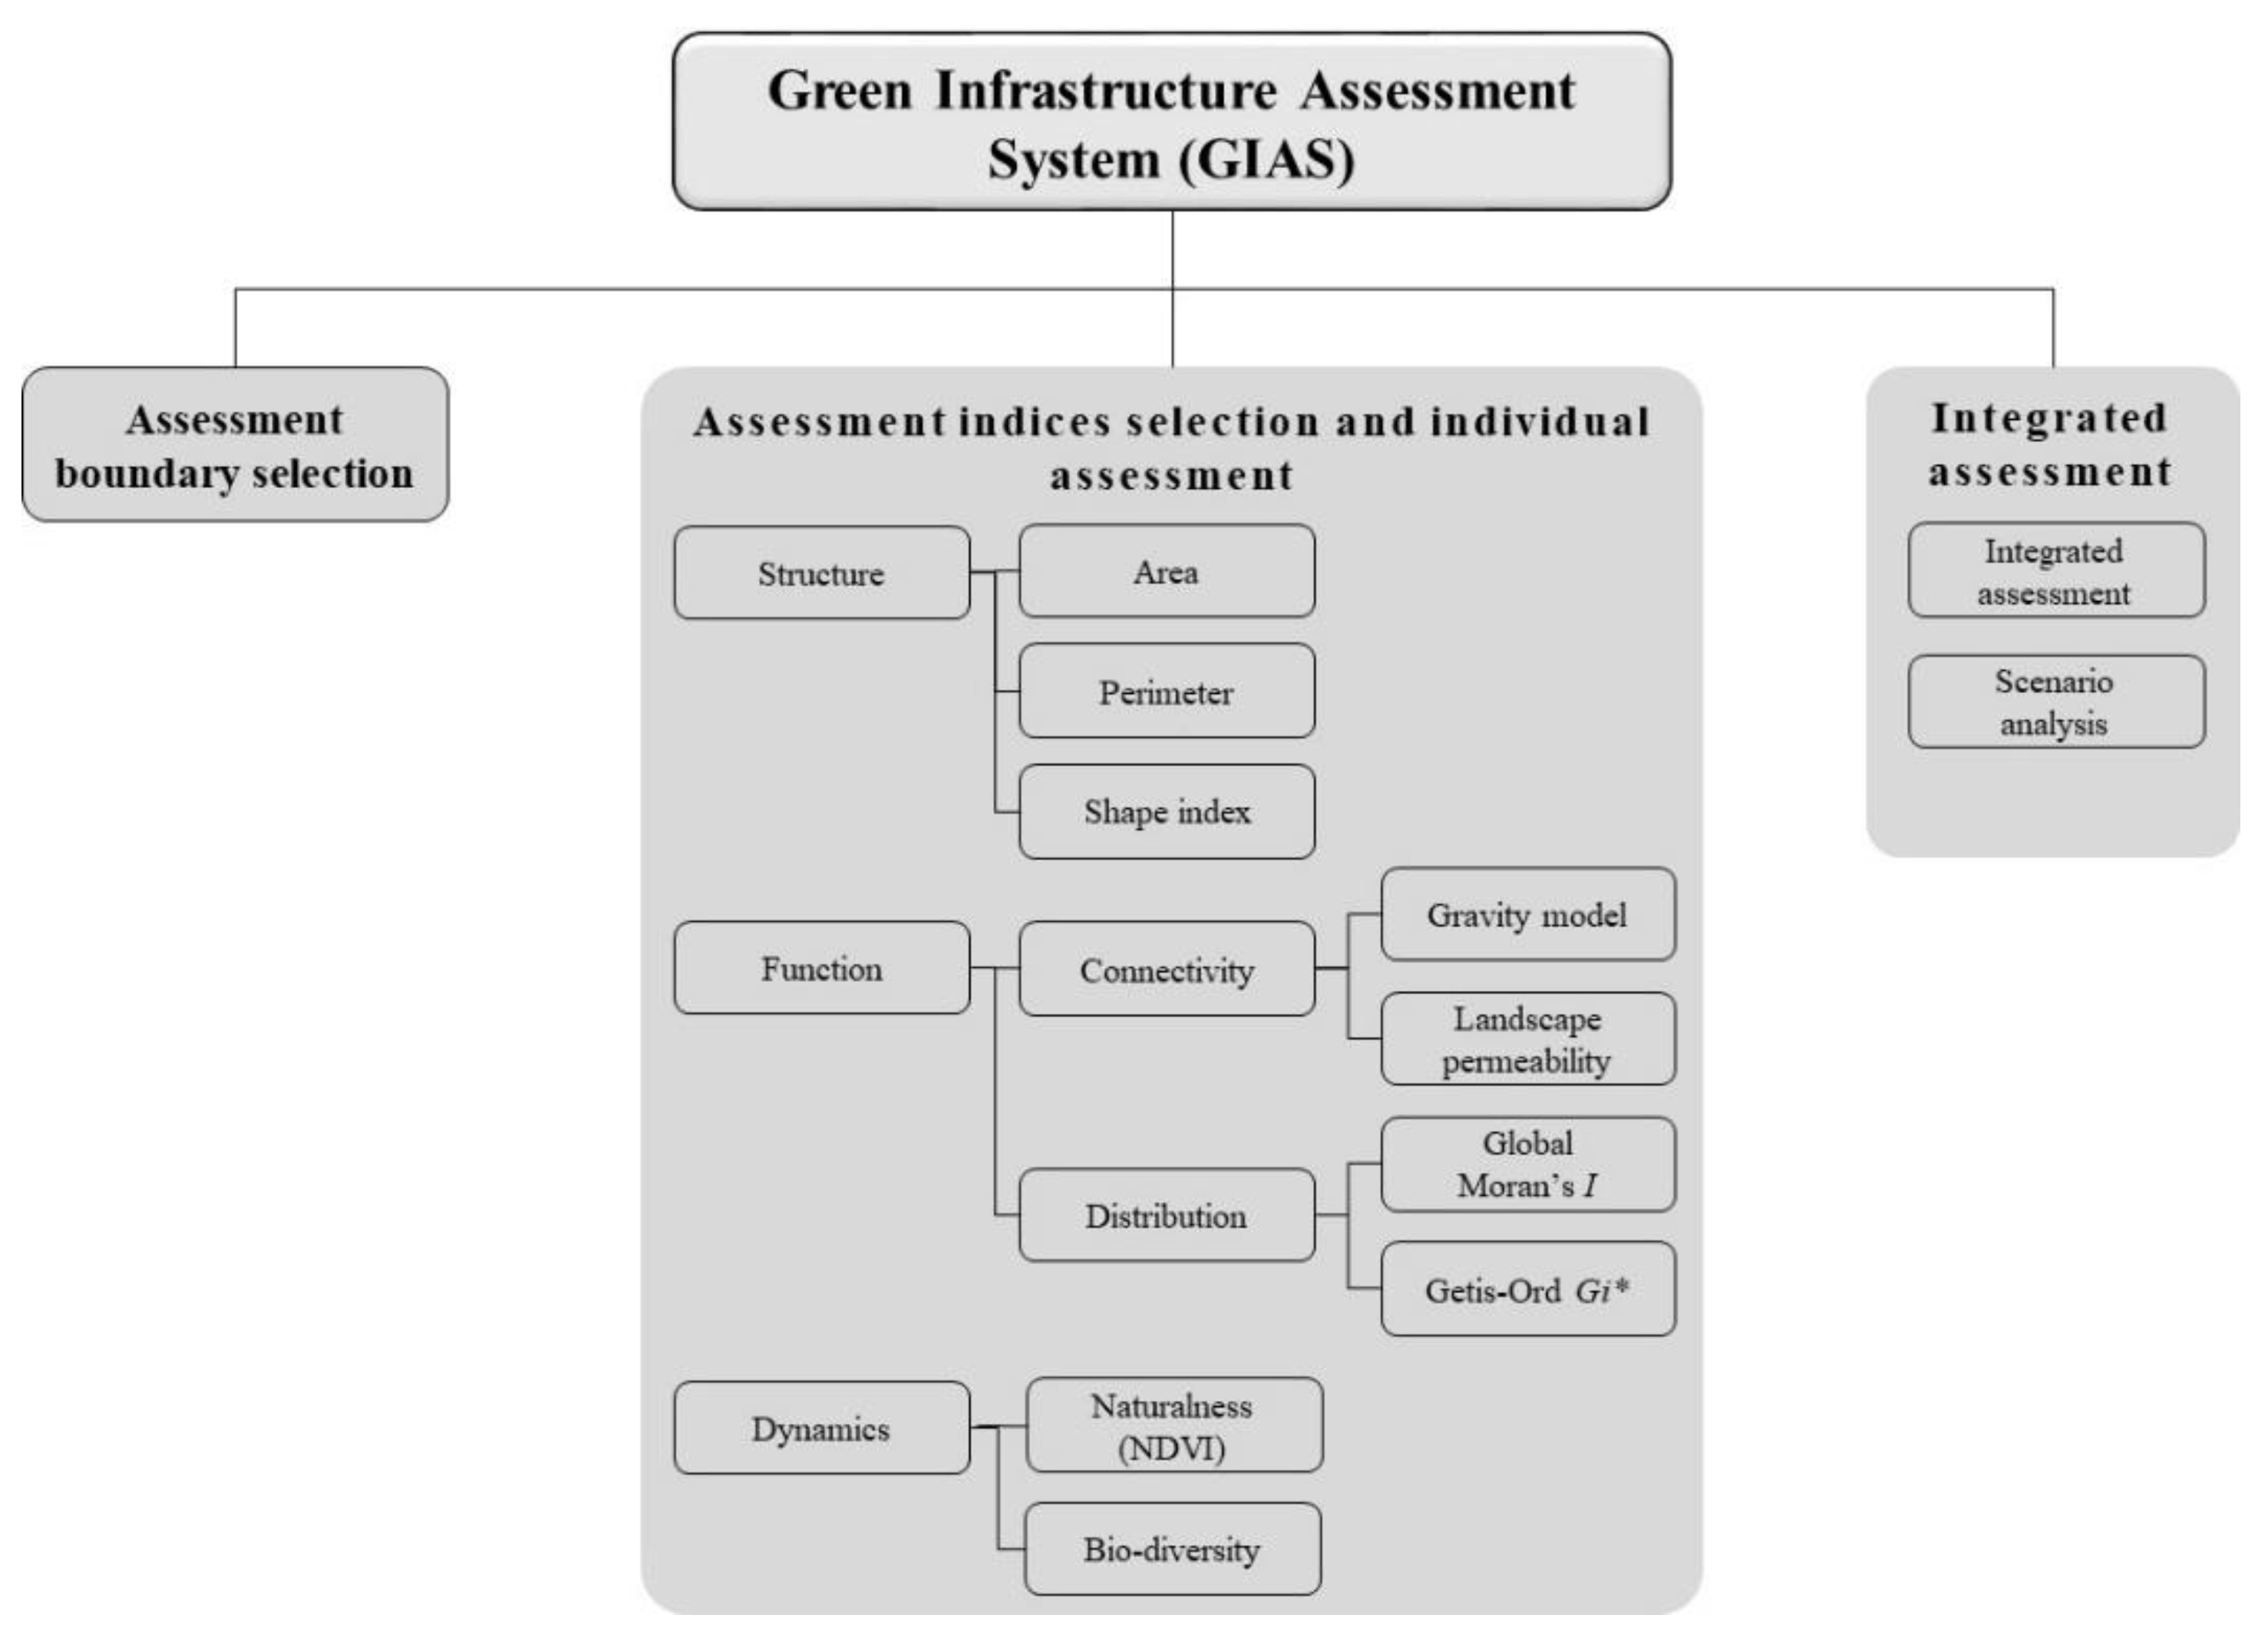 Sustainability | Free Full-Text | The Green Infrastructure